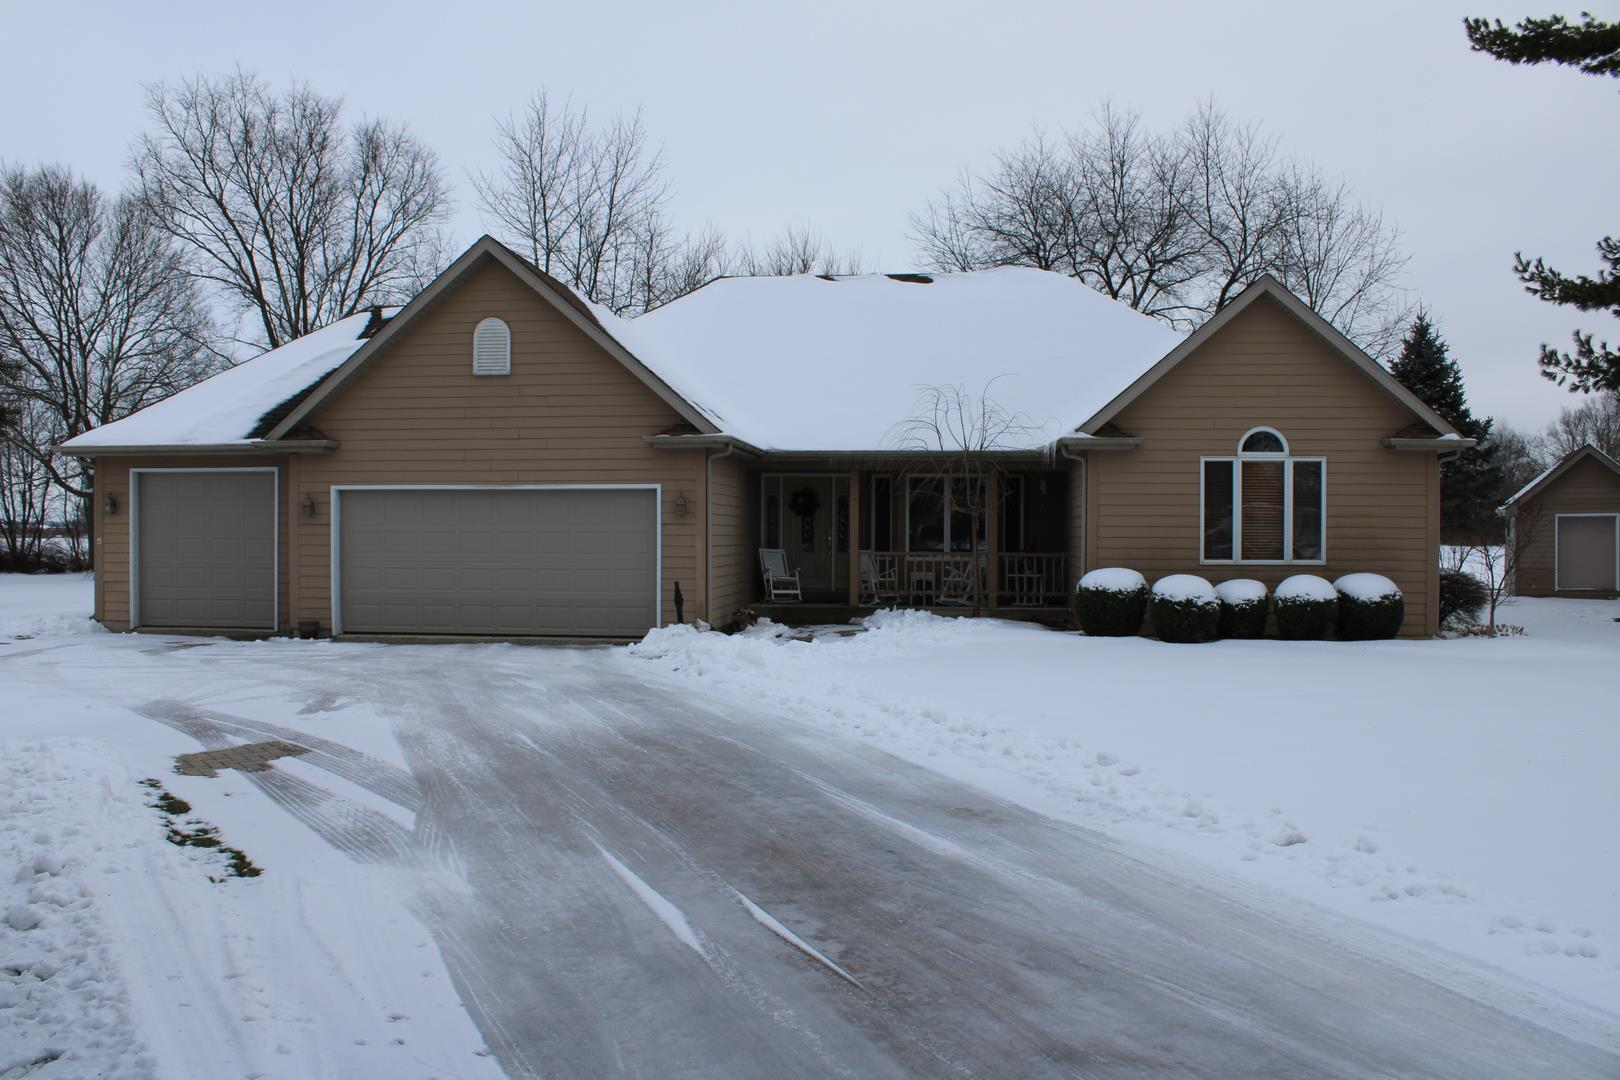 74 Edgebrook Drive, Sandwich, IL 60548 - #: 10966805